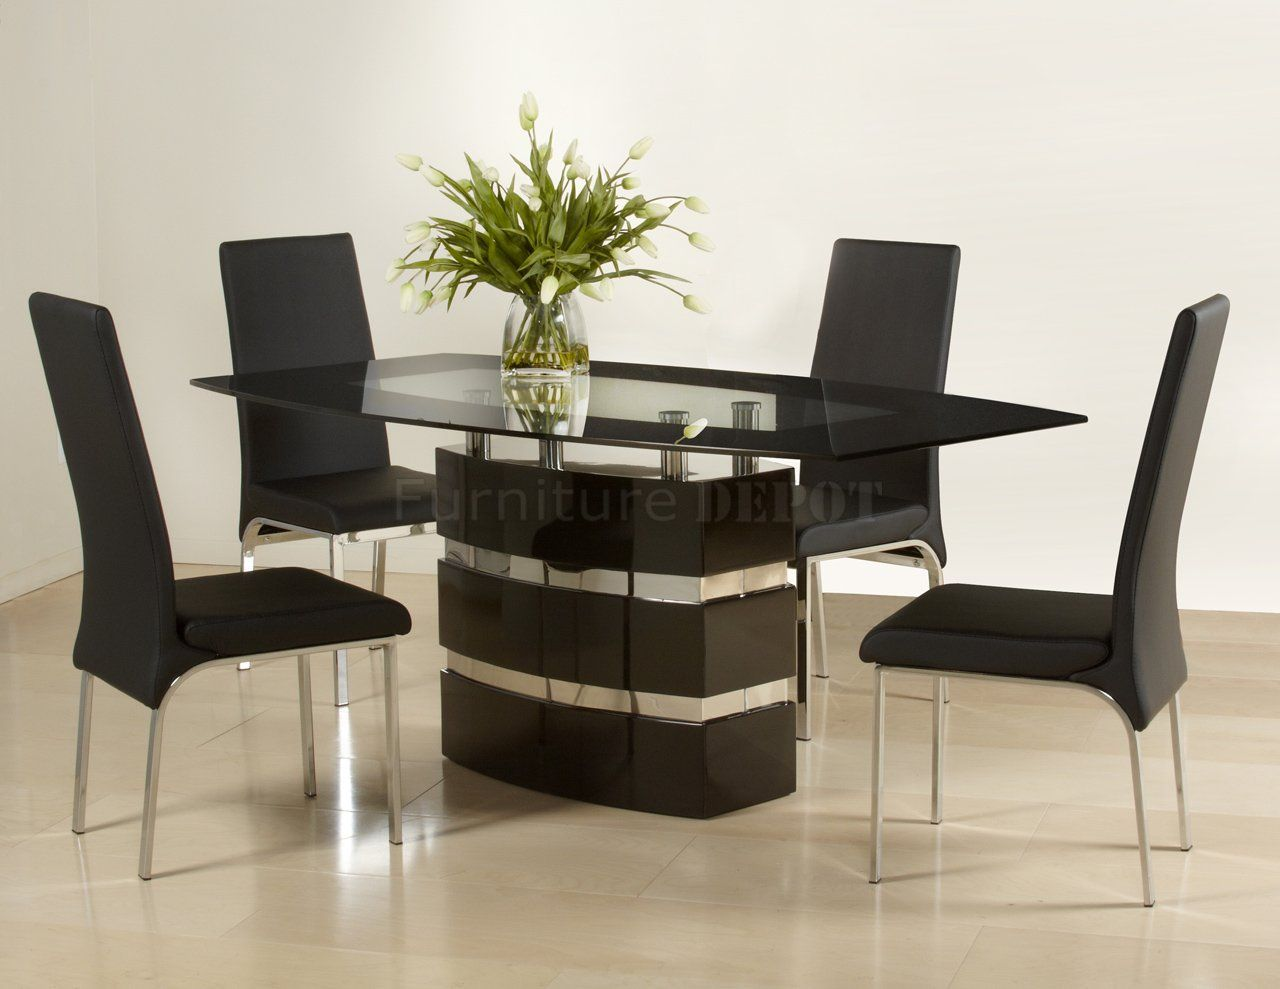 Cozy Black Dining Table Dishy Black Dining Table 8 Chairs